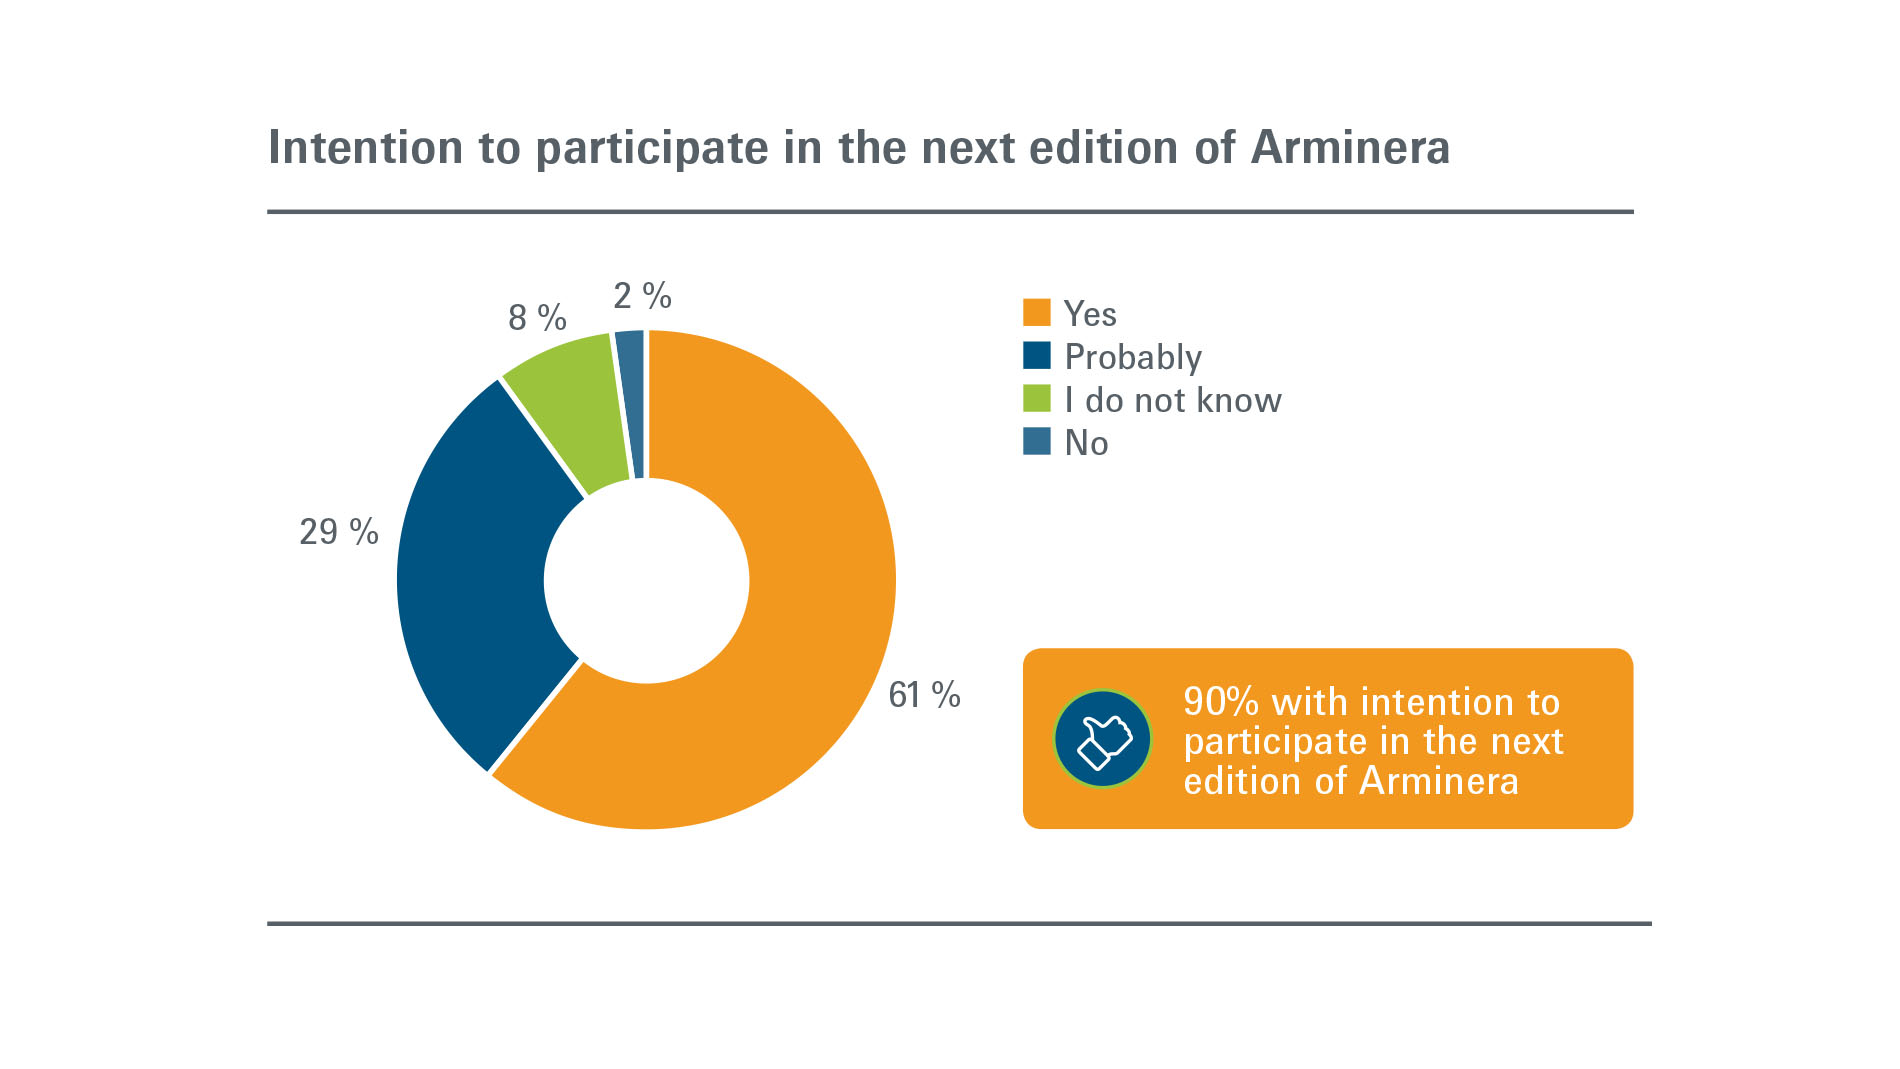 Arminera:  Exhibitors - Intention to participate in next edition